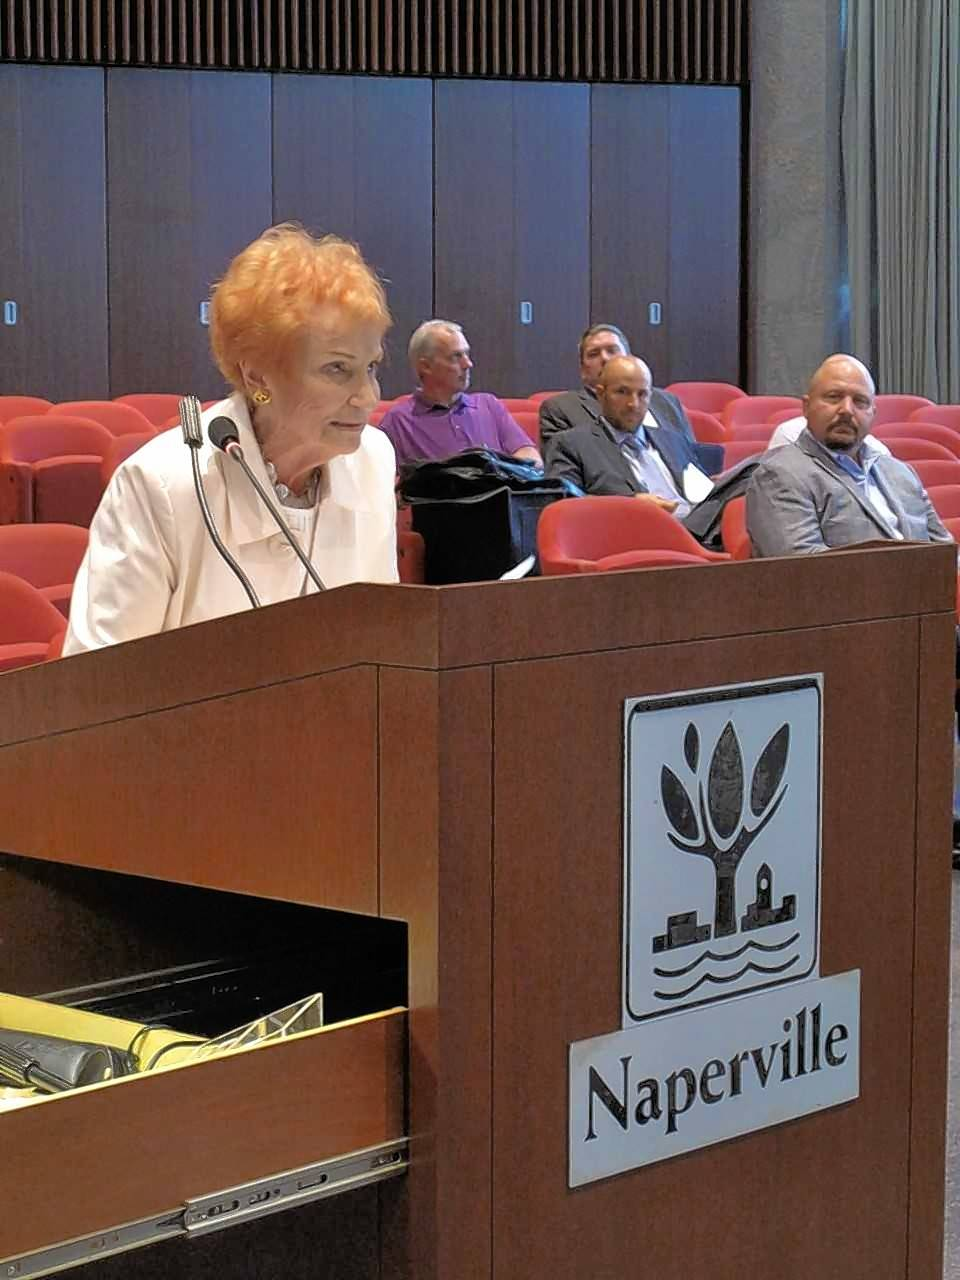 Dolle Nichols, 91, pleads with the Naperville City Council to spare the city's original Nichols Library, named in honor of her great-grandfather, from a development proposal that would incorporate its facade into a new mixed-use center.